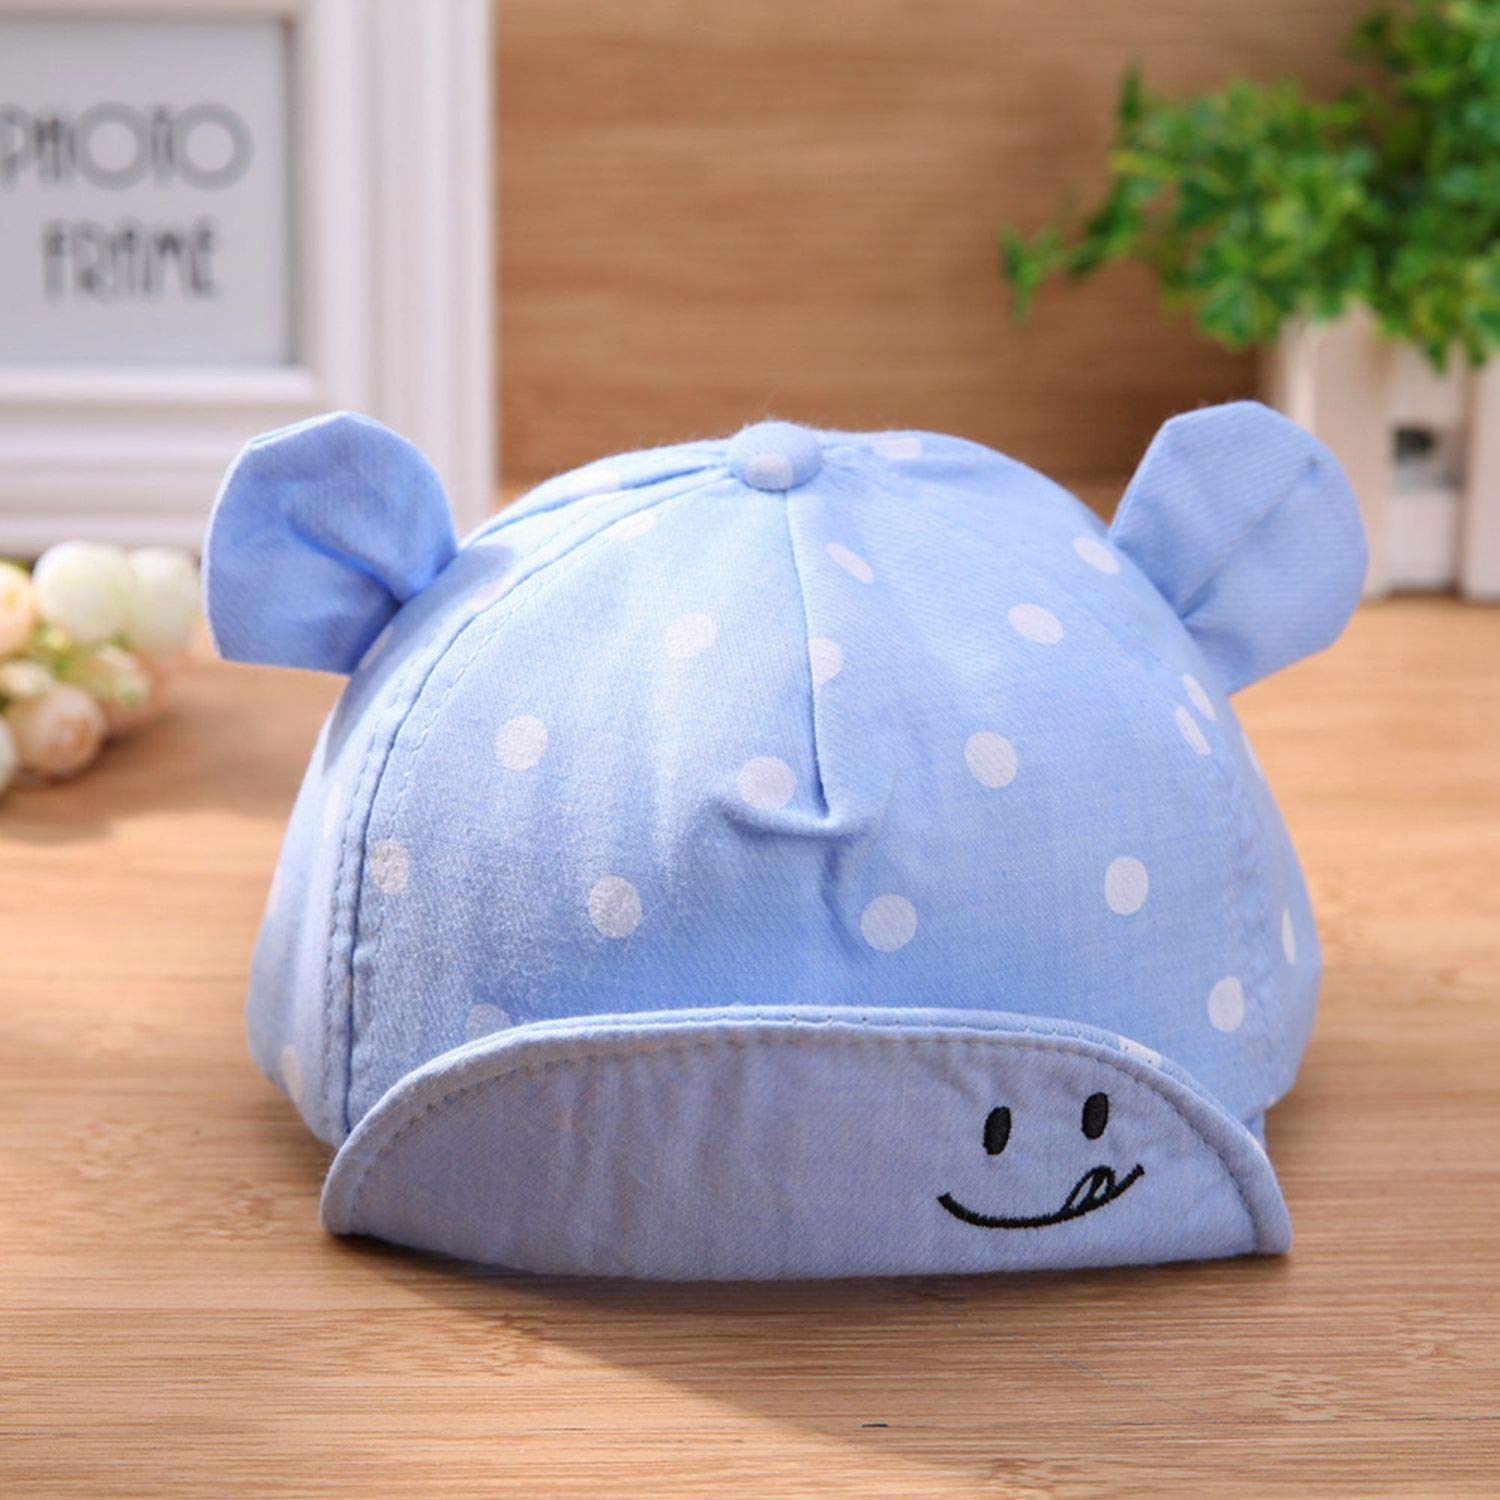 Dot Baby Caps New Girl Boys Cap Summer Hats for Boy Infant Sun Hat with Ear 2019 Sunscreen Baby Girl Hat